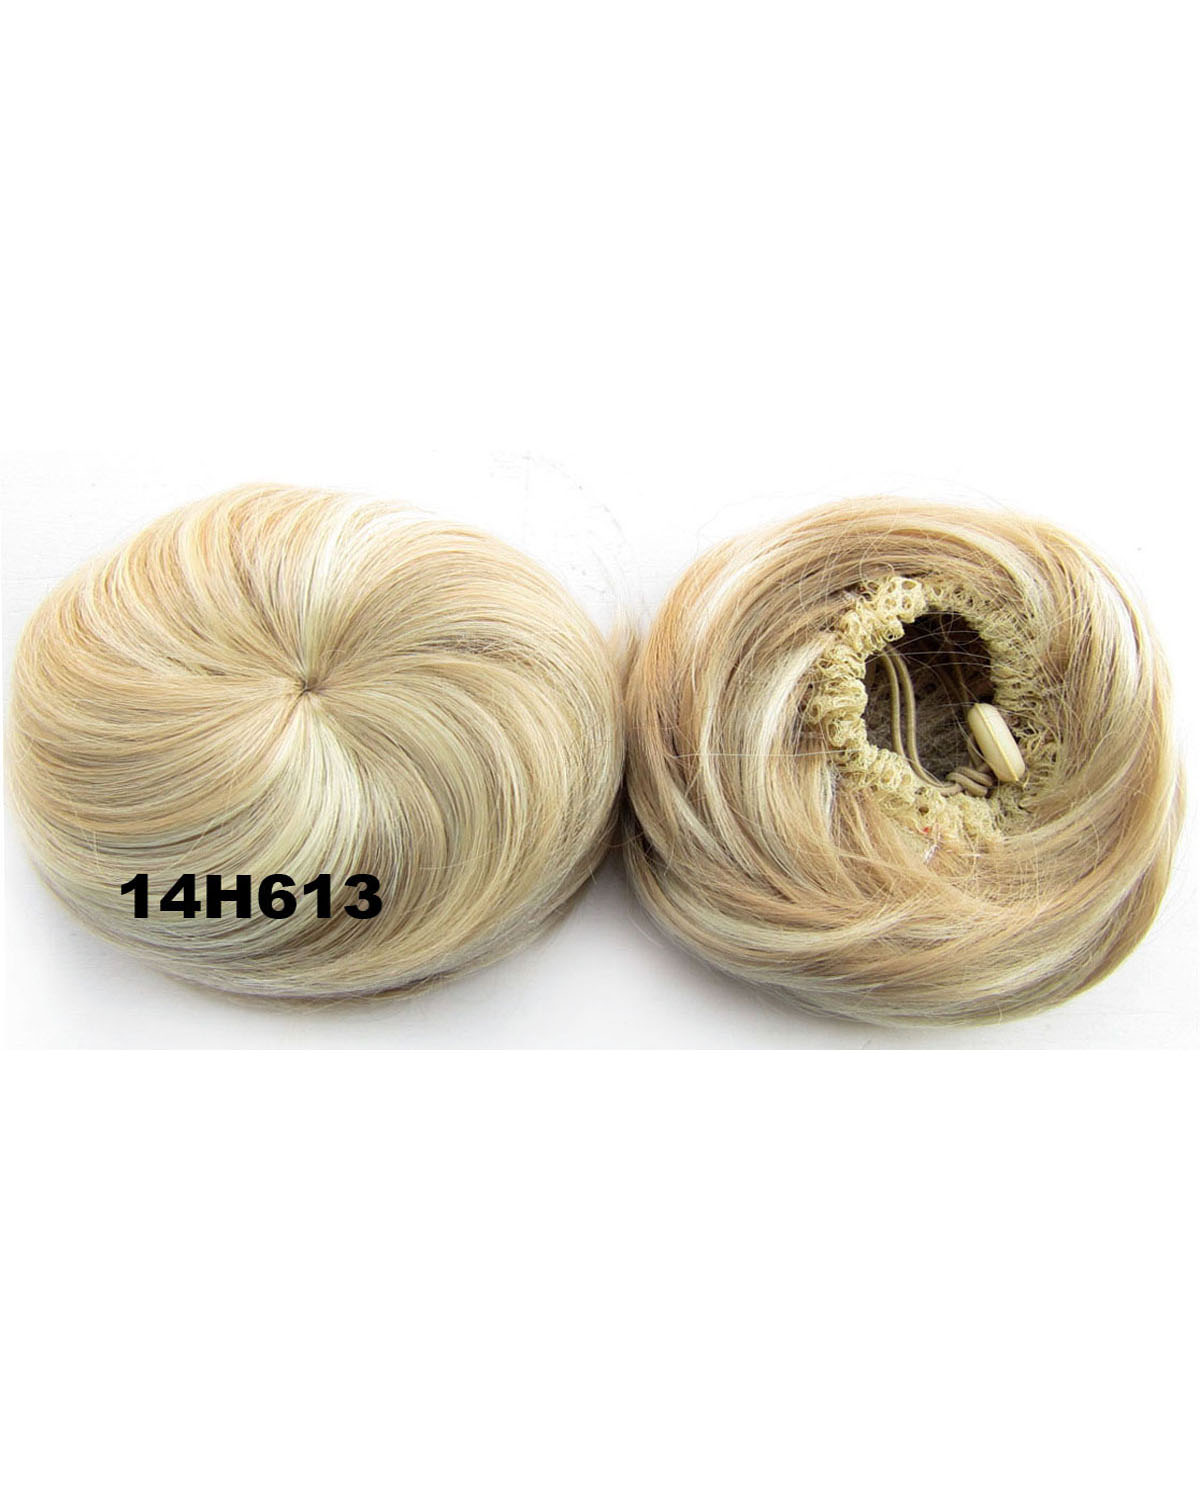 Ladies Fresh Straight Short Hair Buns Drawstring Synthetic Hair Extension Bride Scrunchies14H613